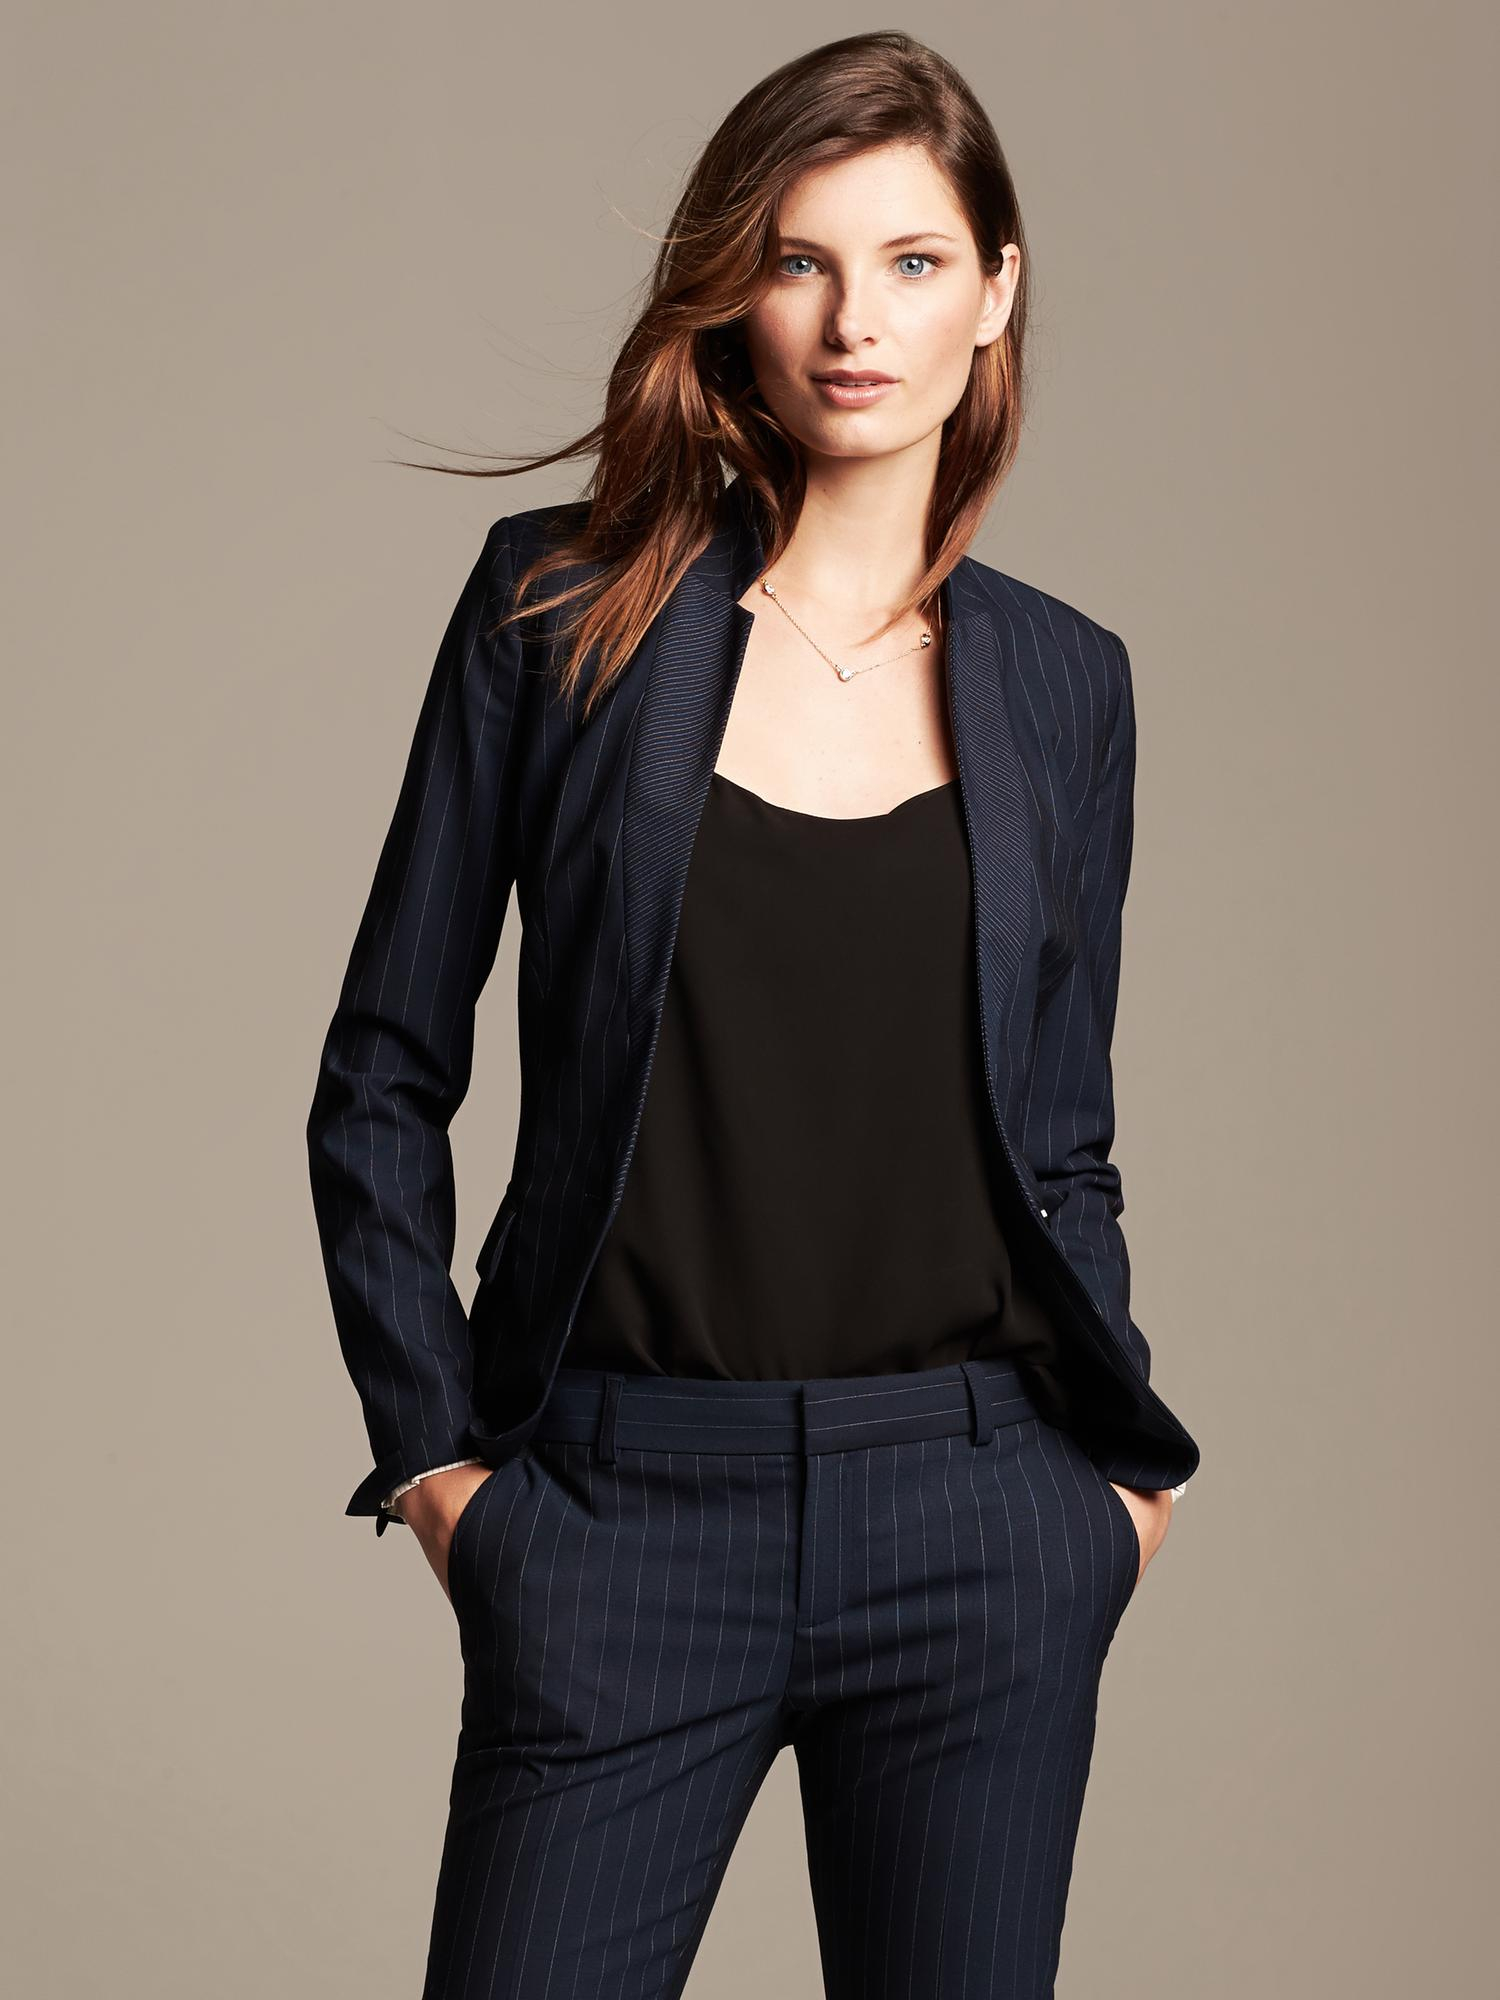 Shop the Jones New York Collection Online at Lord & Taylor and Dillard's.